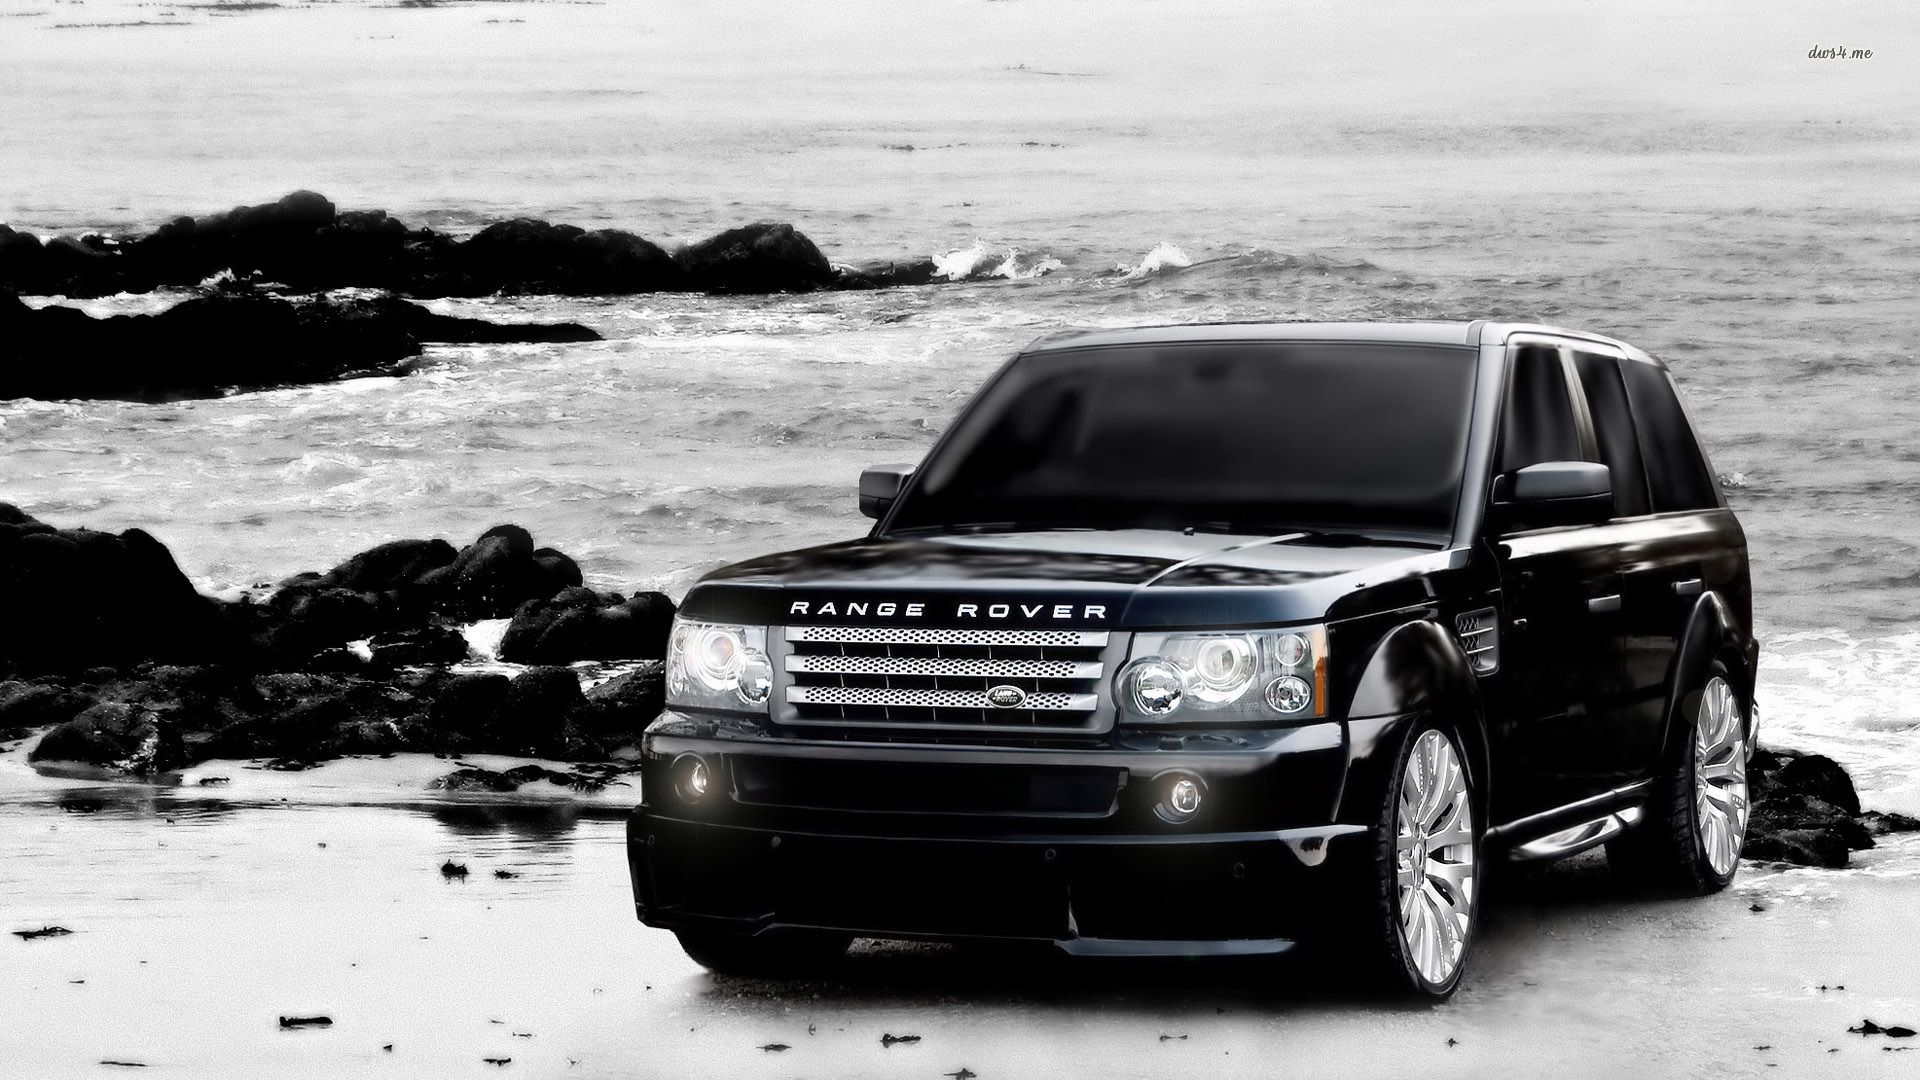 Image Result For Range Rover New Car Picture Full Hd Com Harf